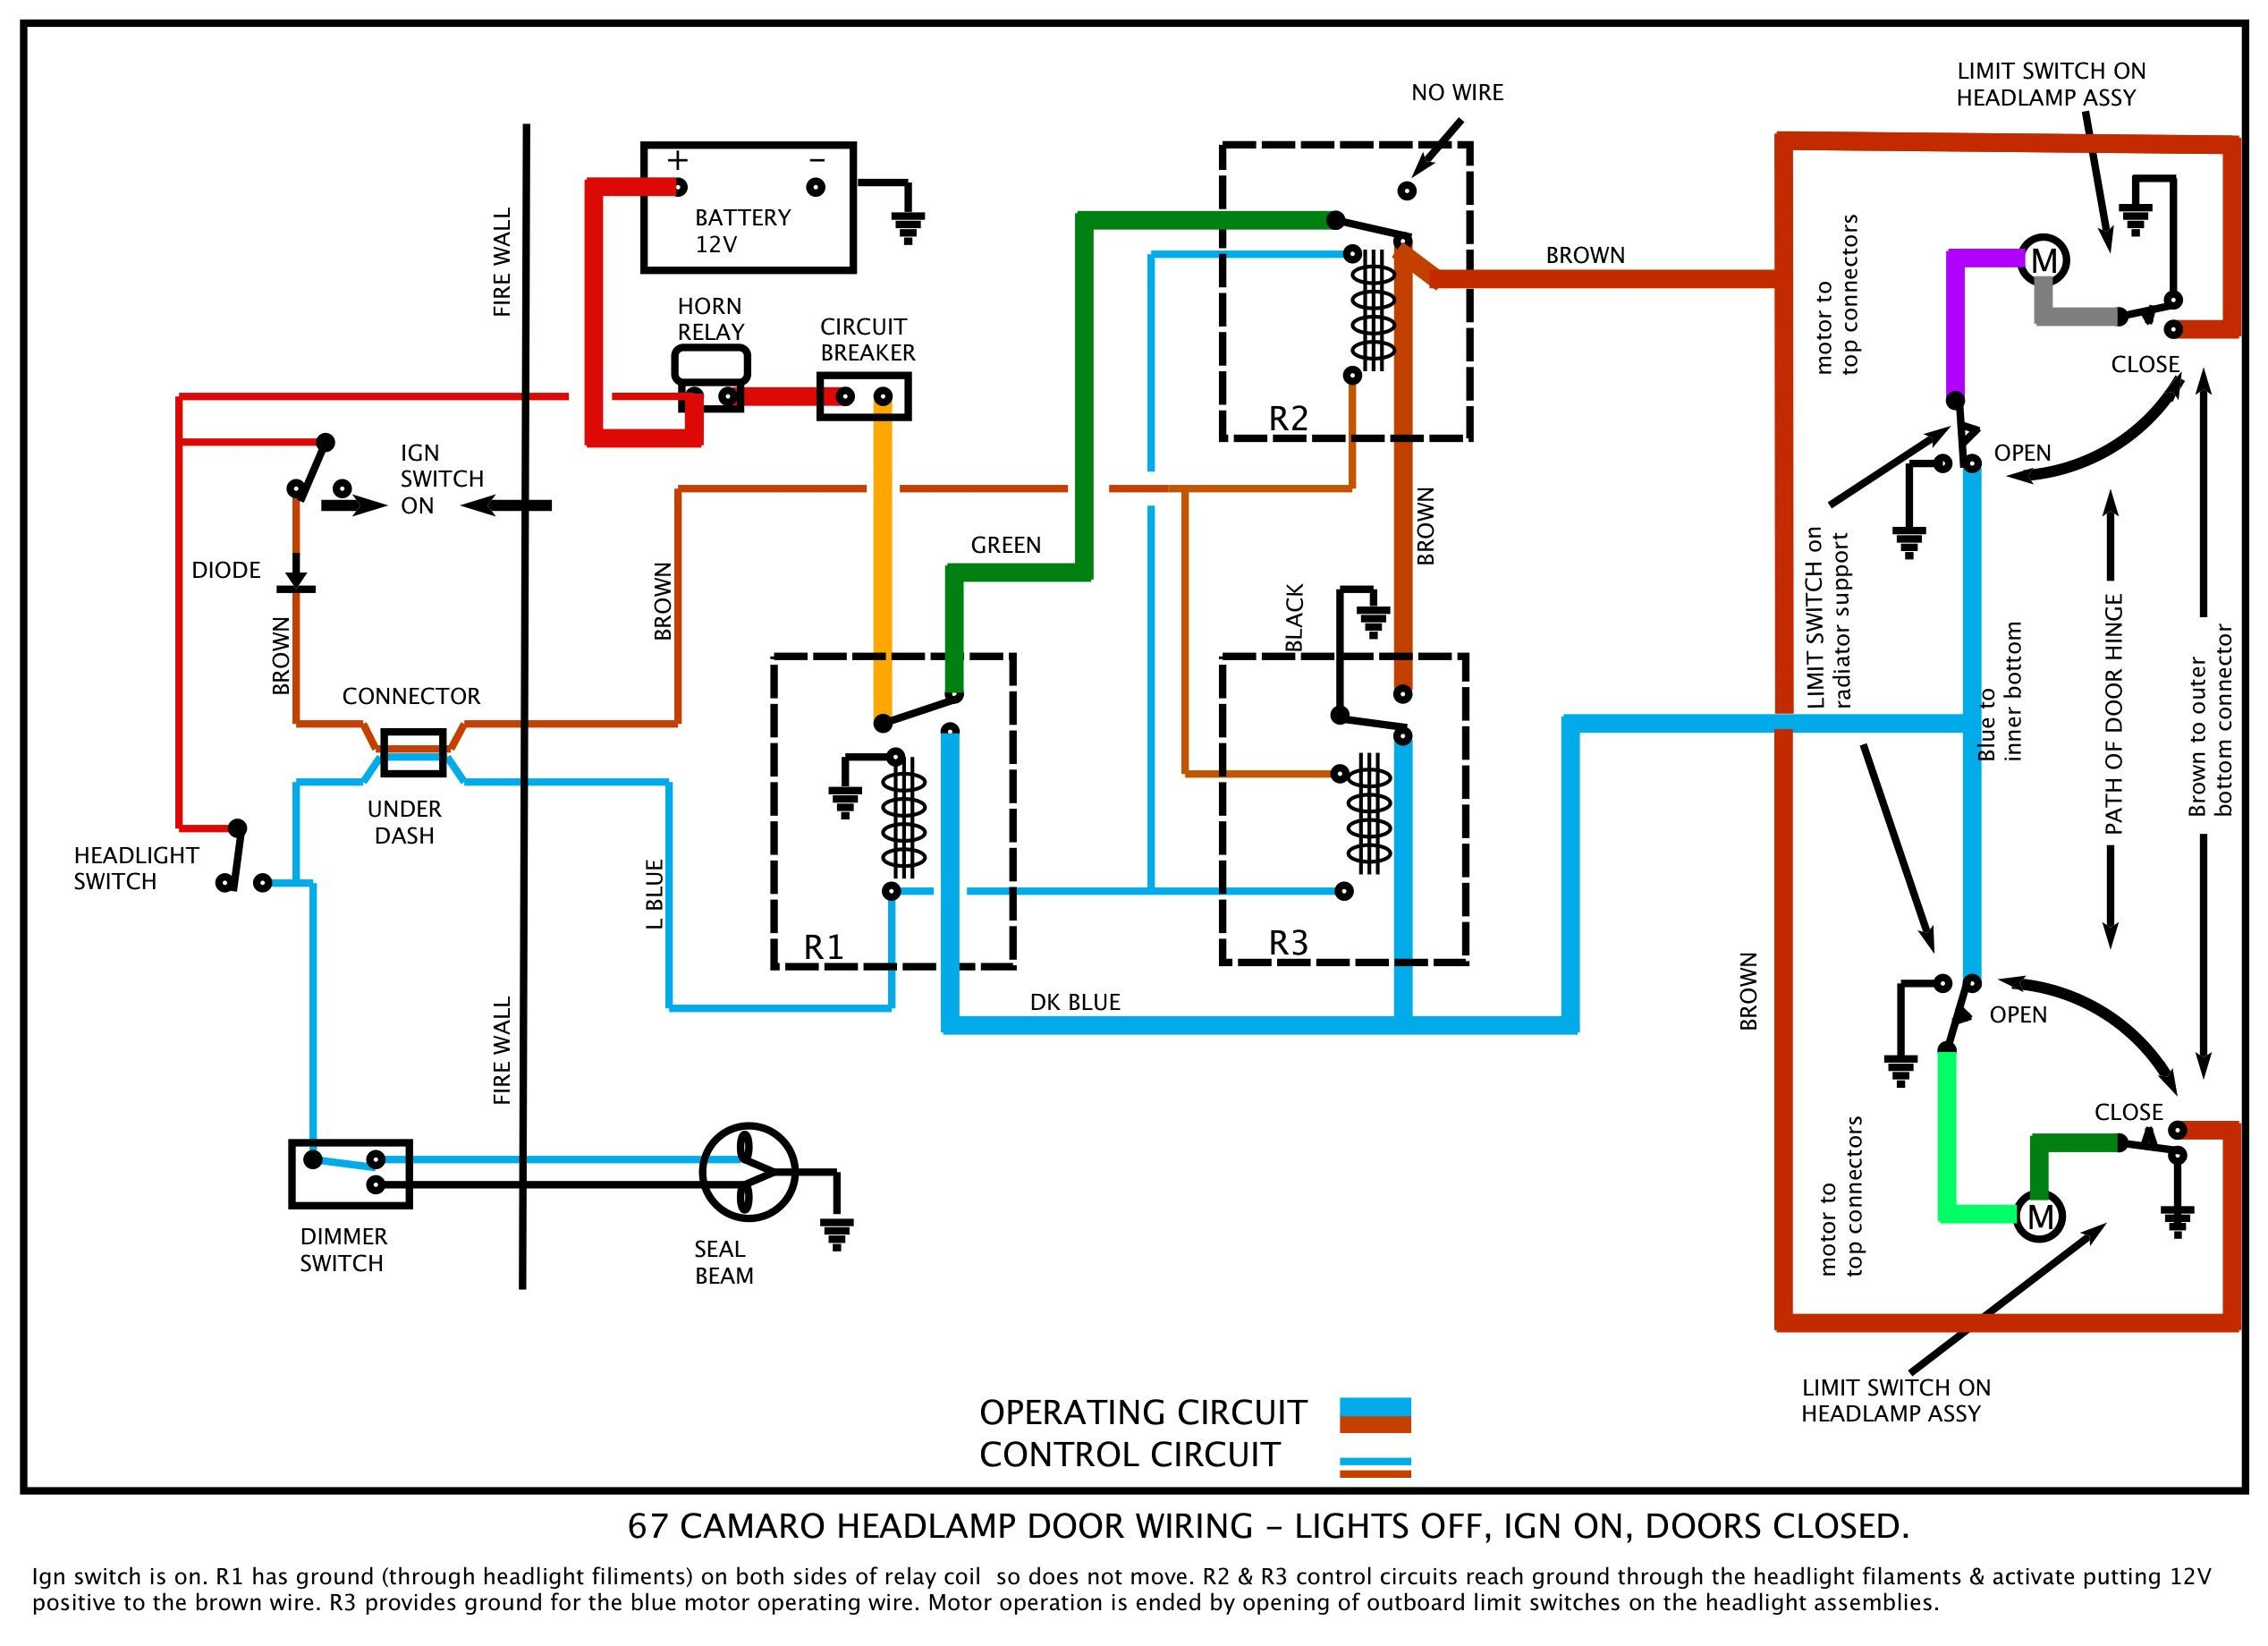 DIAGRAM] 1968 Camaro Tic Toc Tach Wiring Diagram FULL Version HD Quality Wiring  Diagram - 23252.ACCNET.FRaccnet.fr